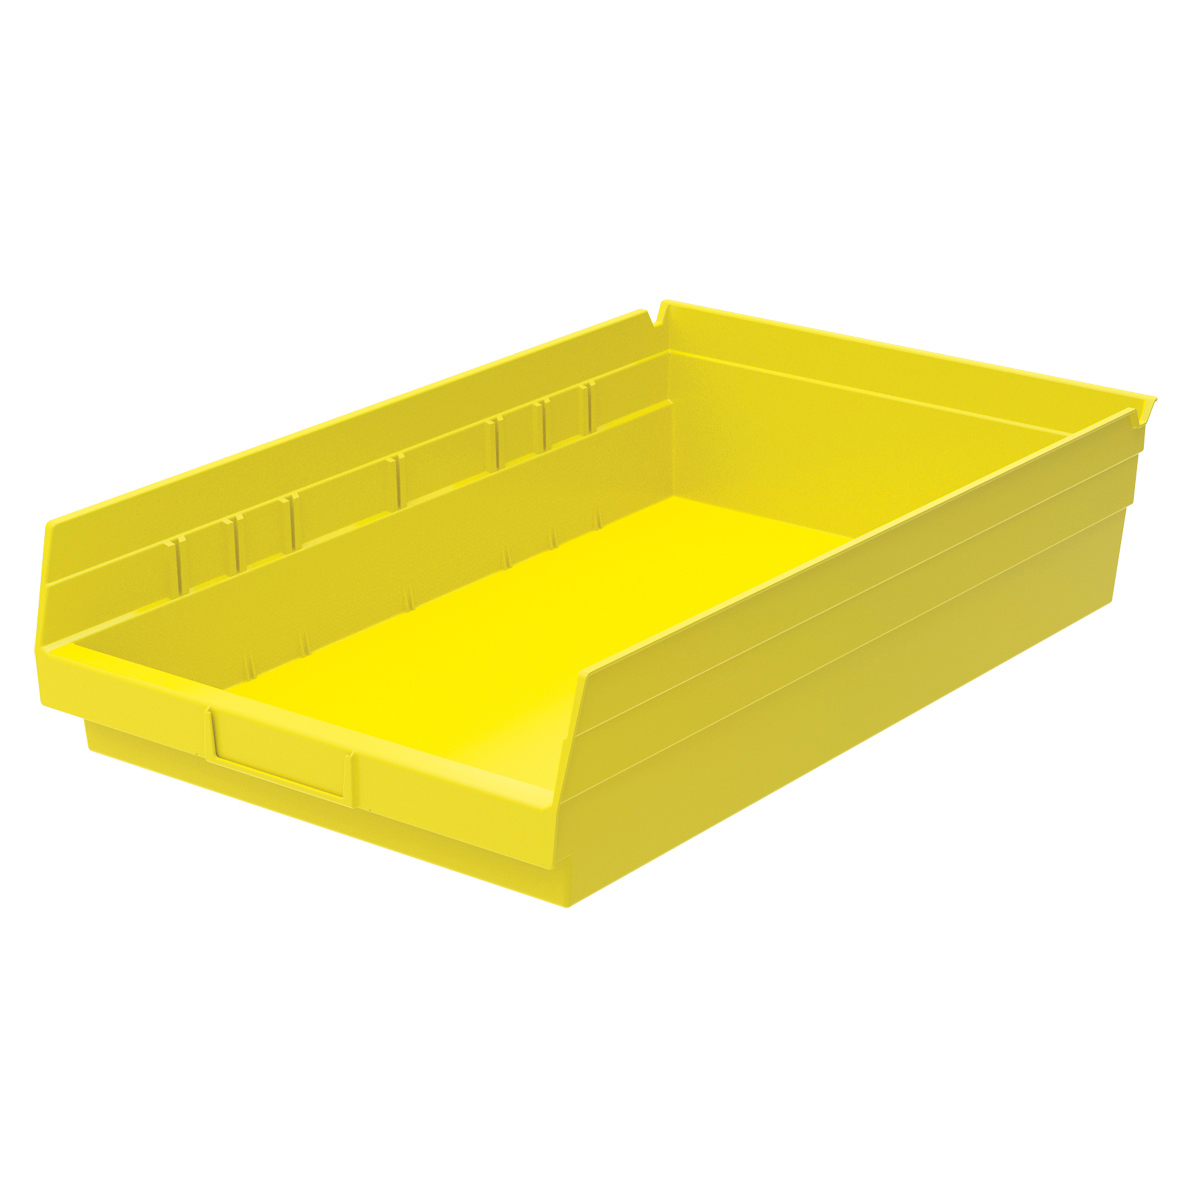 Shelf Bin 17-7/8 x 11-1/8 x 4, Yellow (30178YELLO).  This item sold in carton quantities of 12.